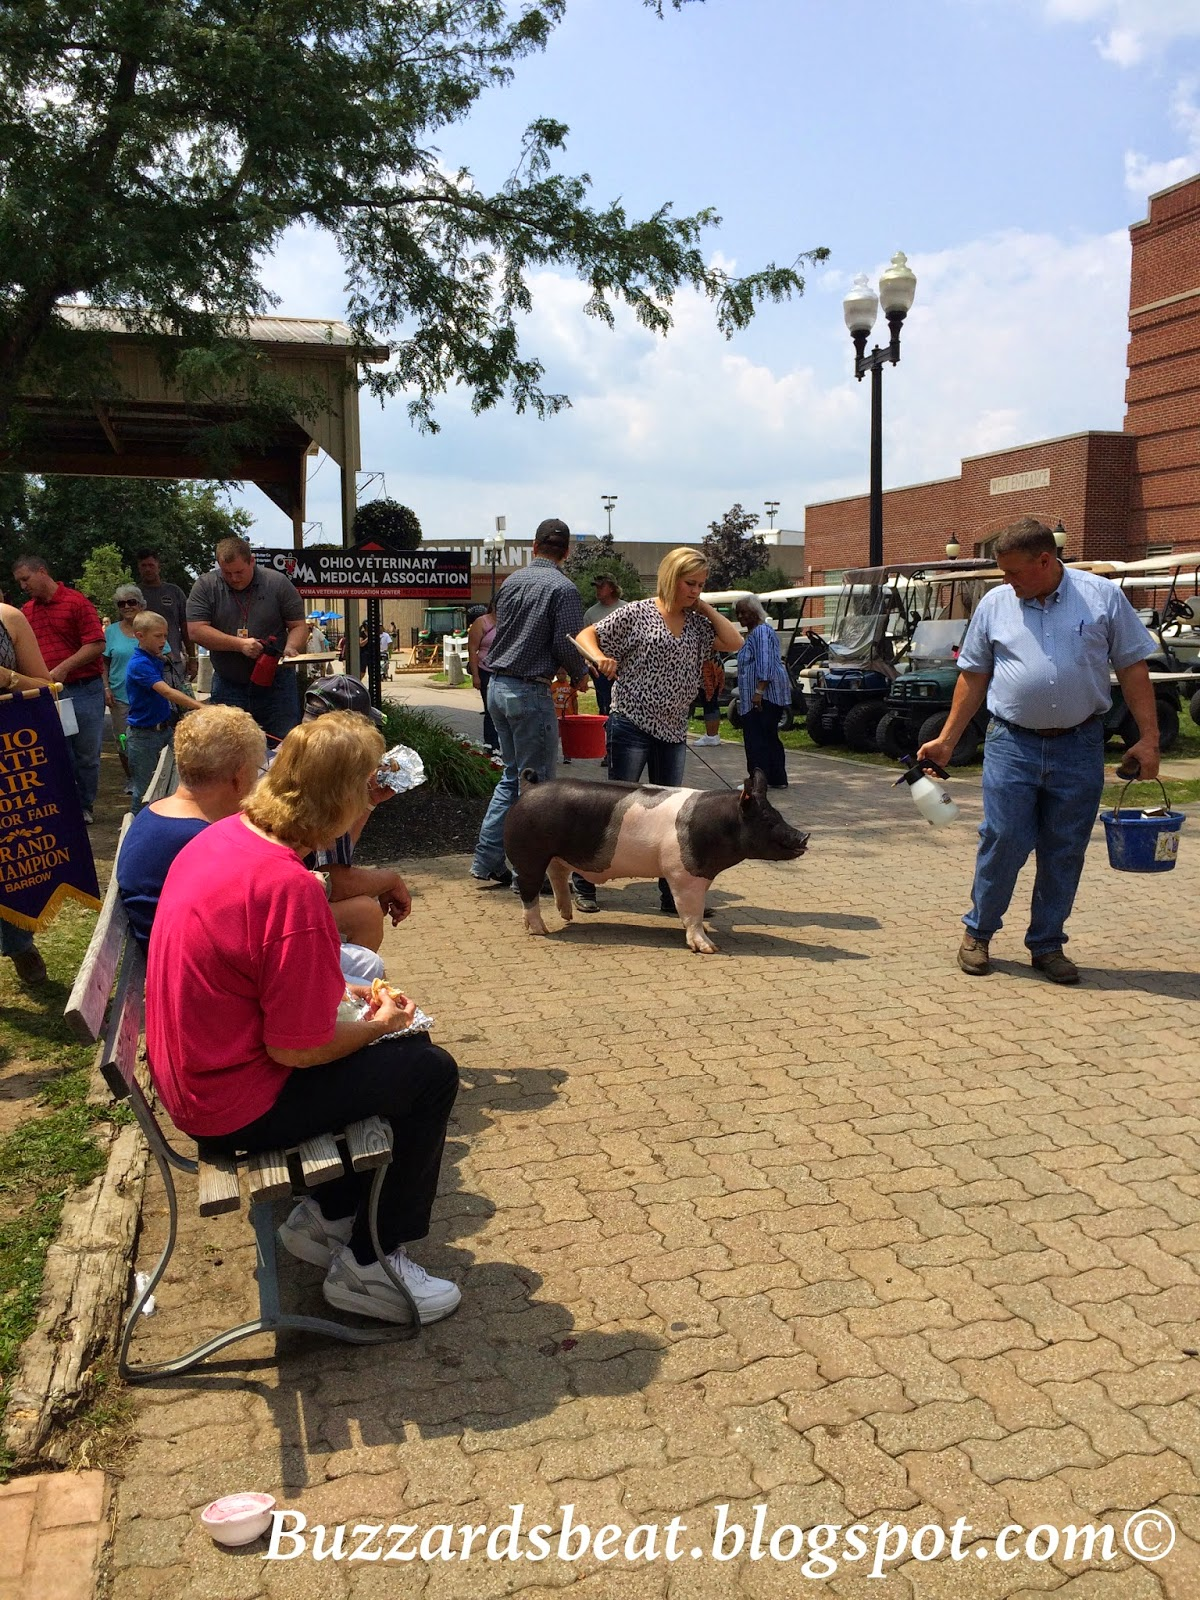 Walking a pig through a large crowd requires patience